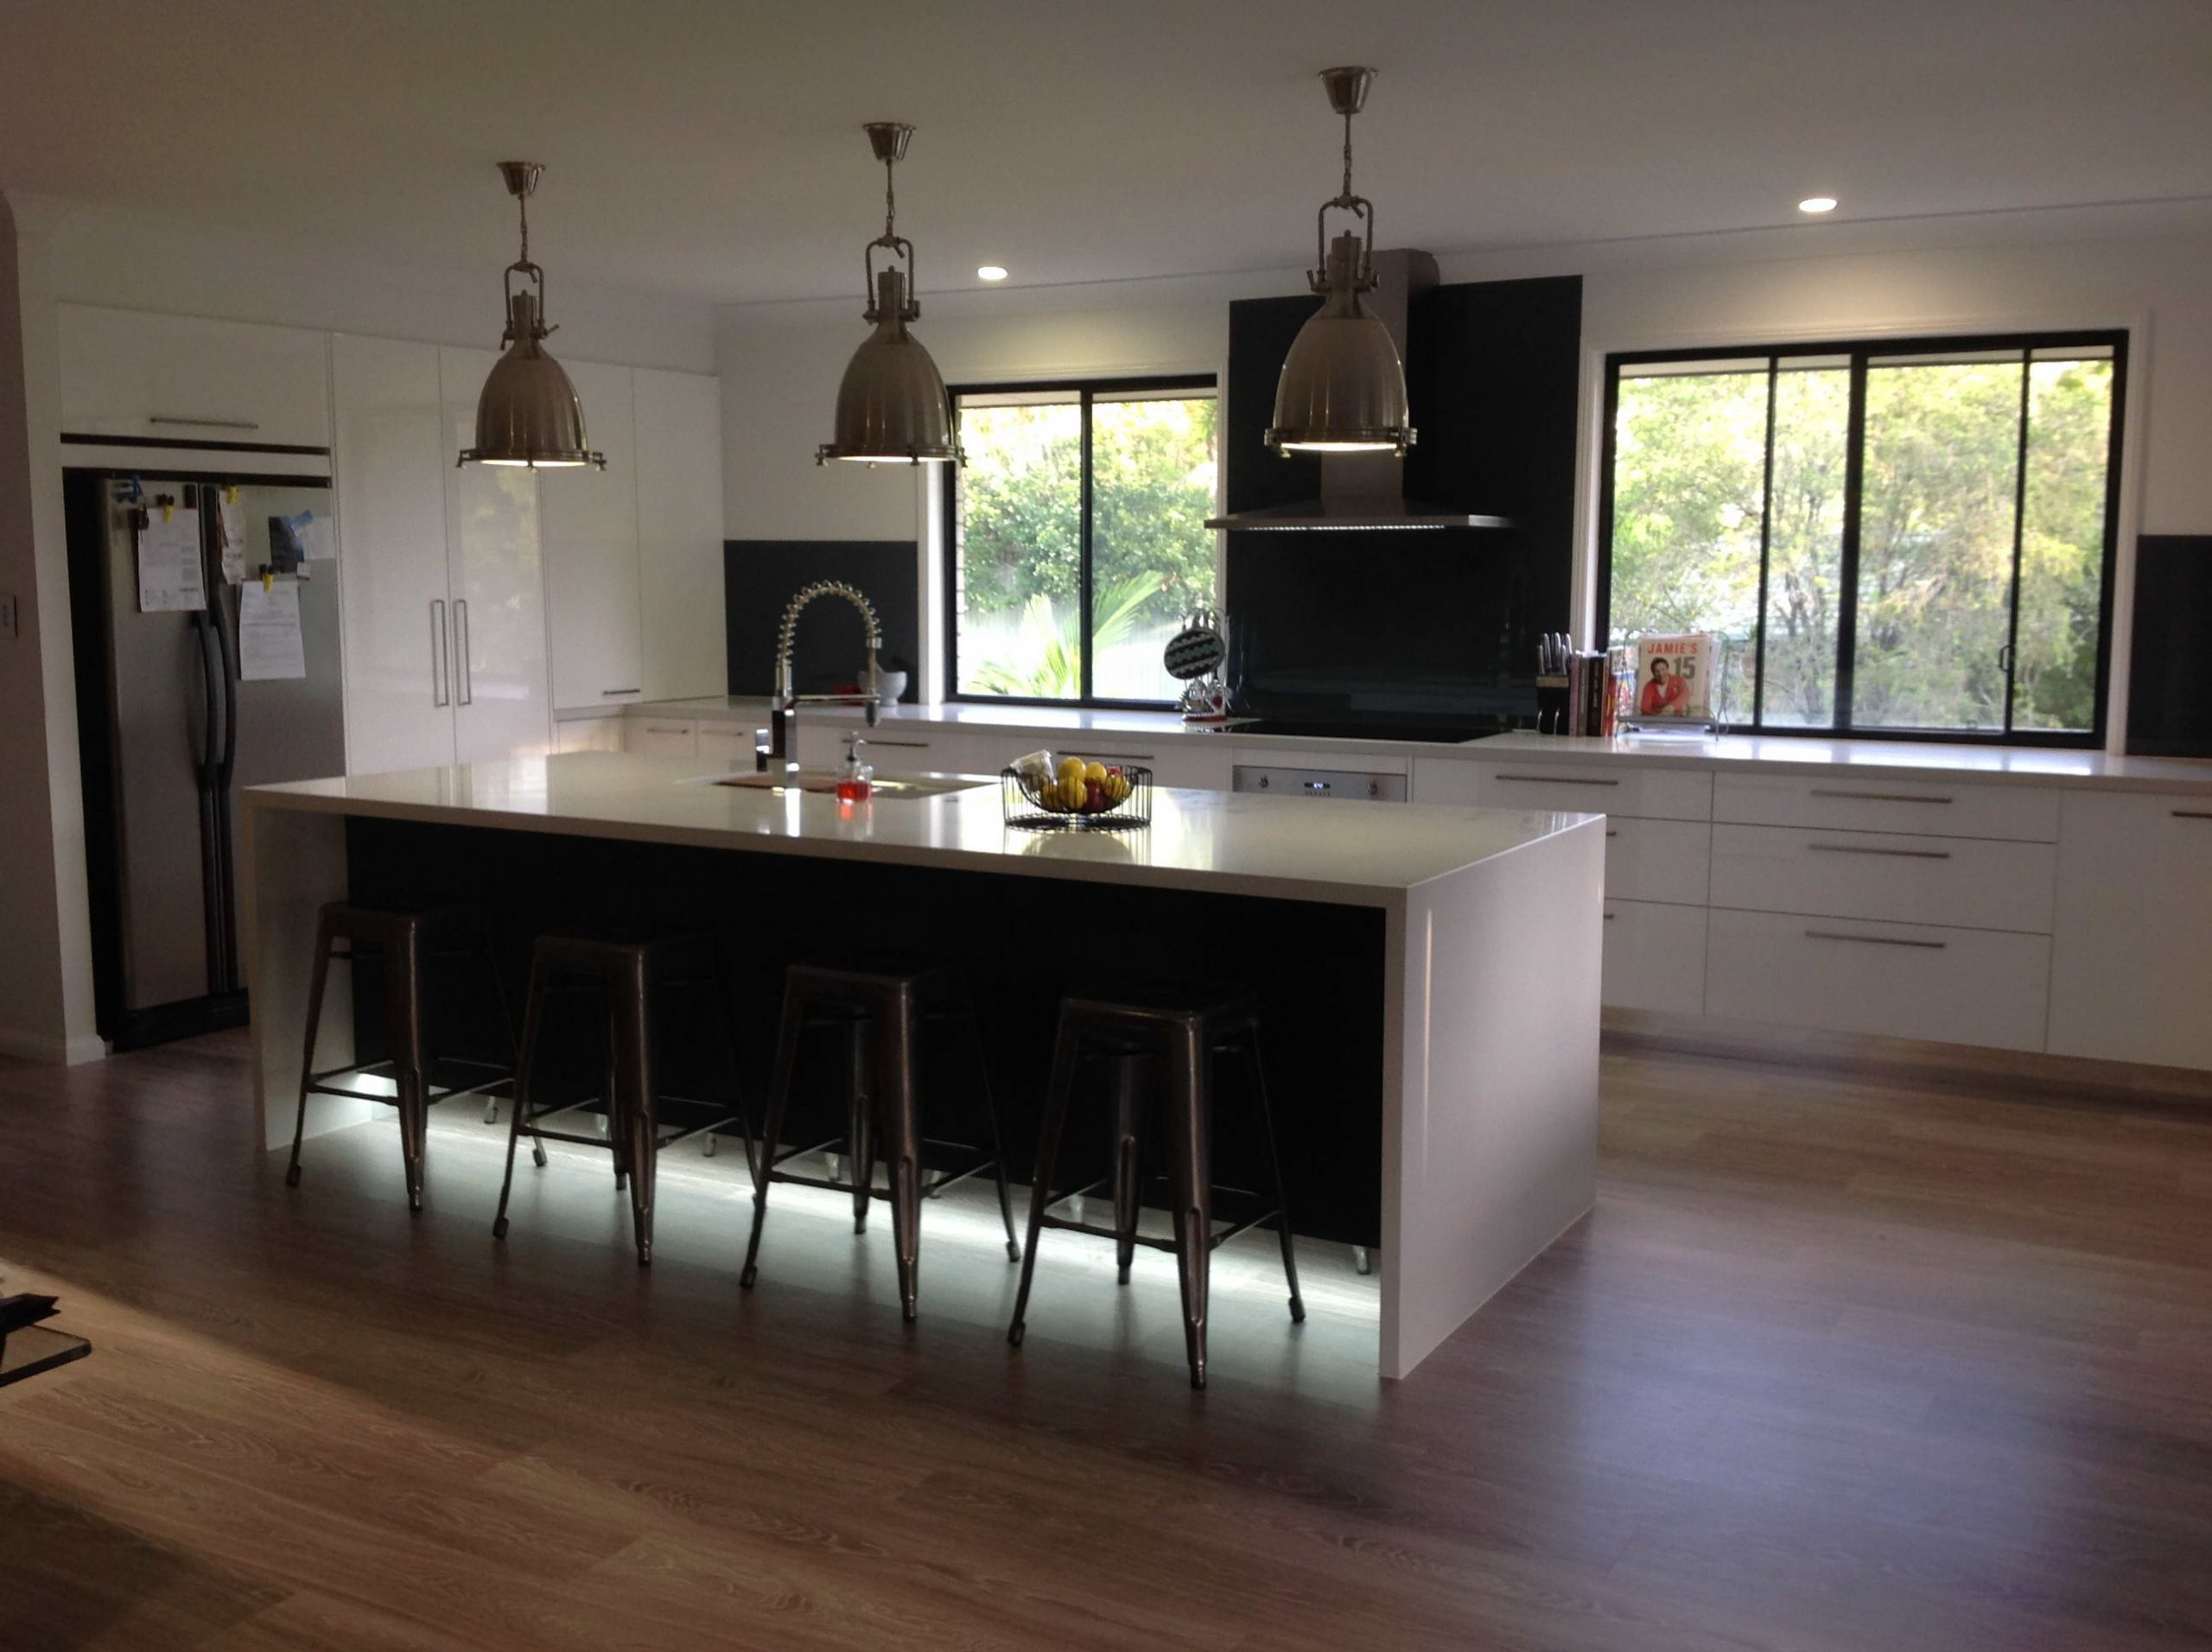 Kitchen Renovations - Gold Coast - Renovation at Burleigh Heads